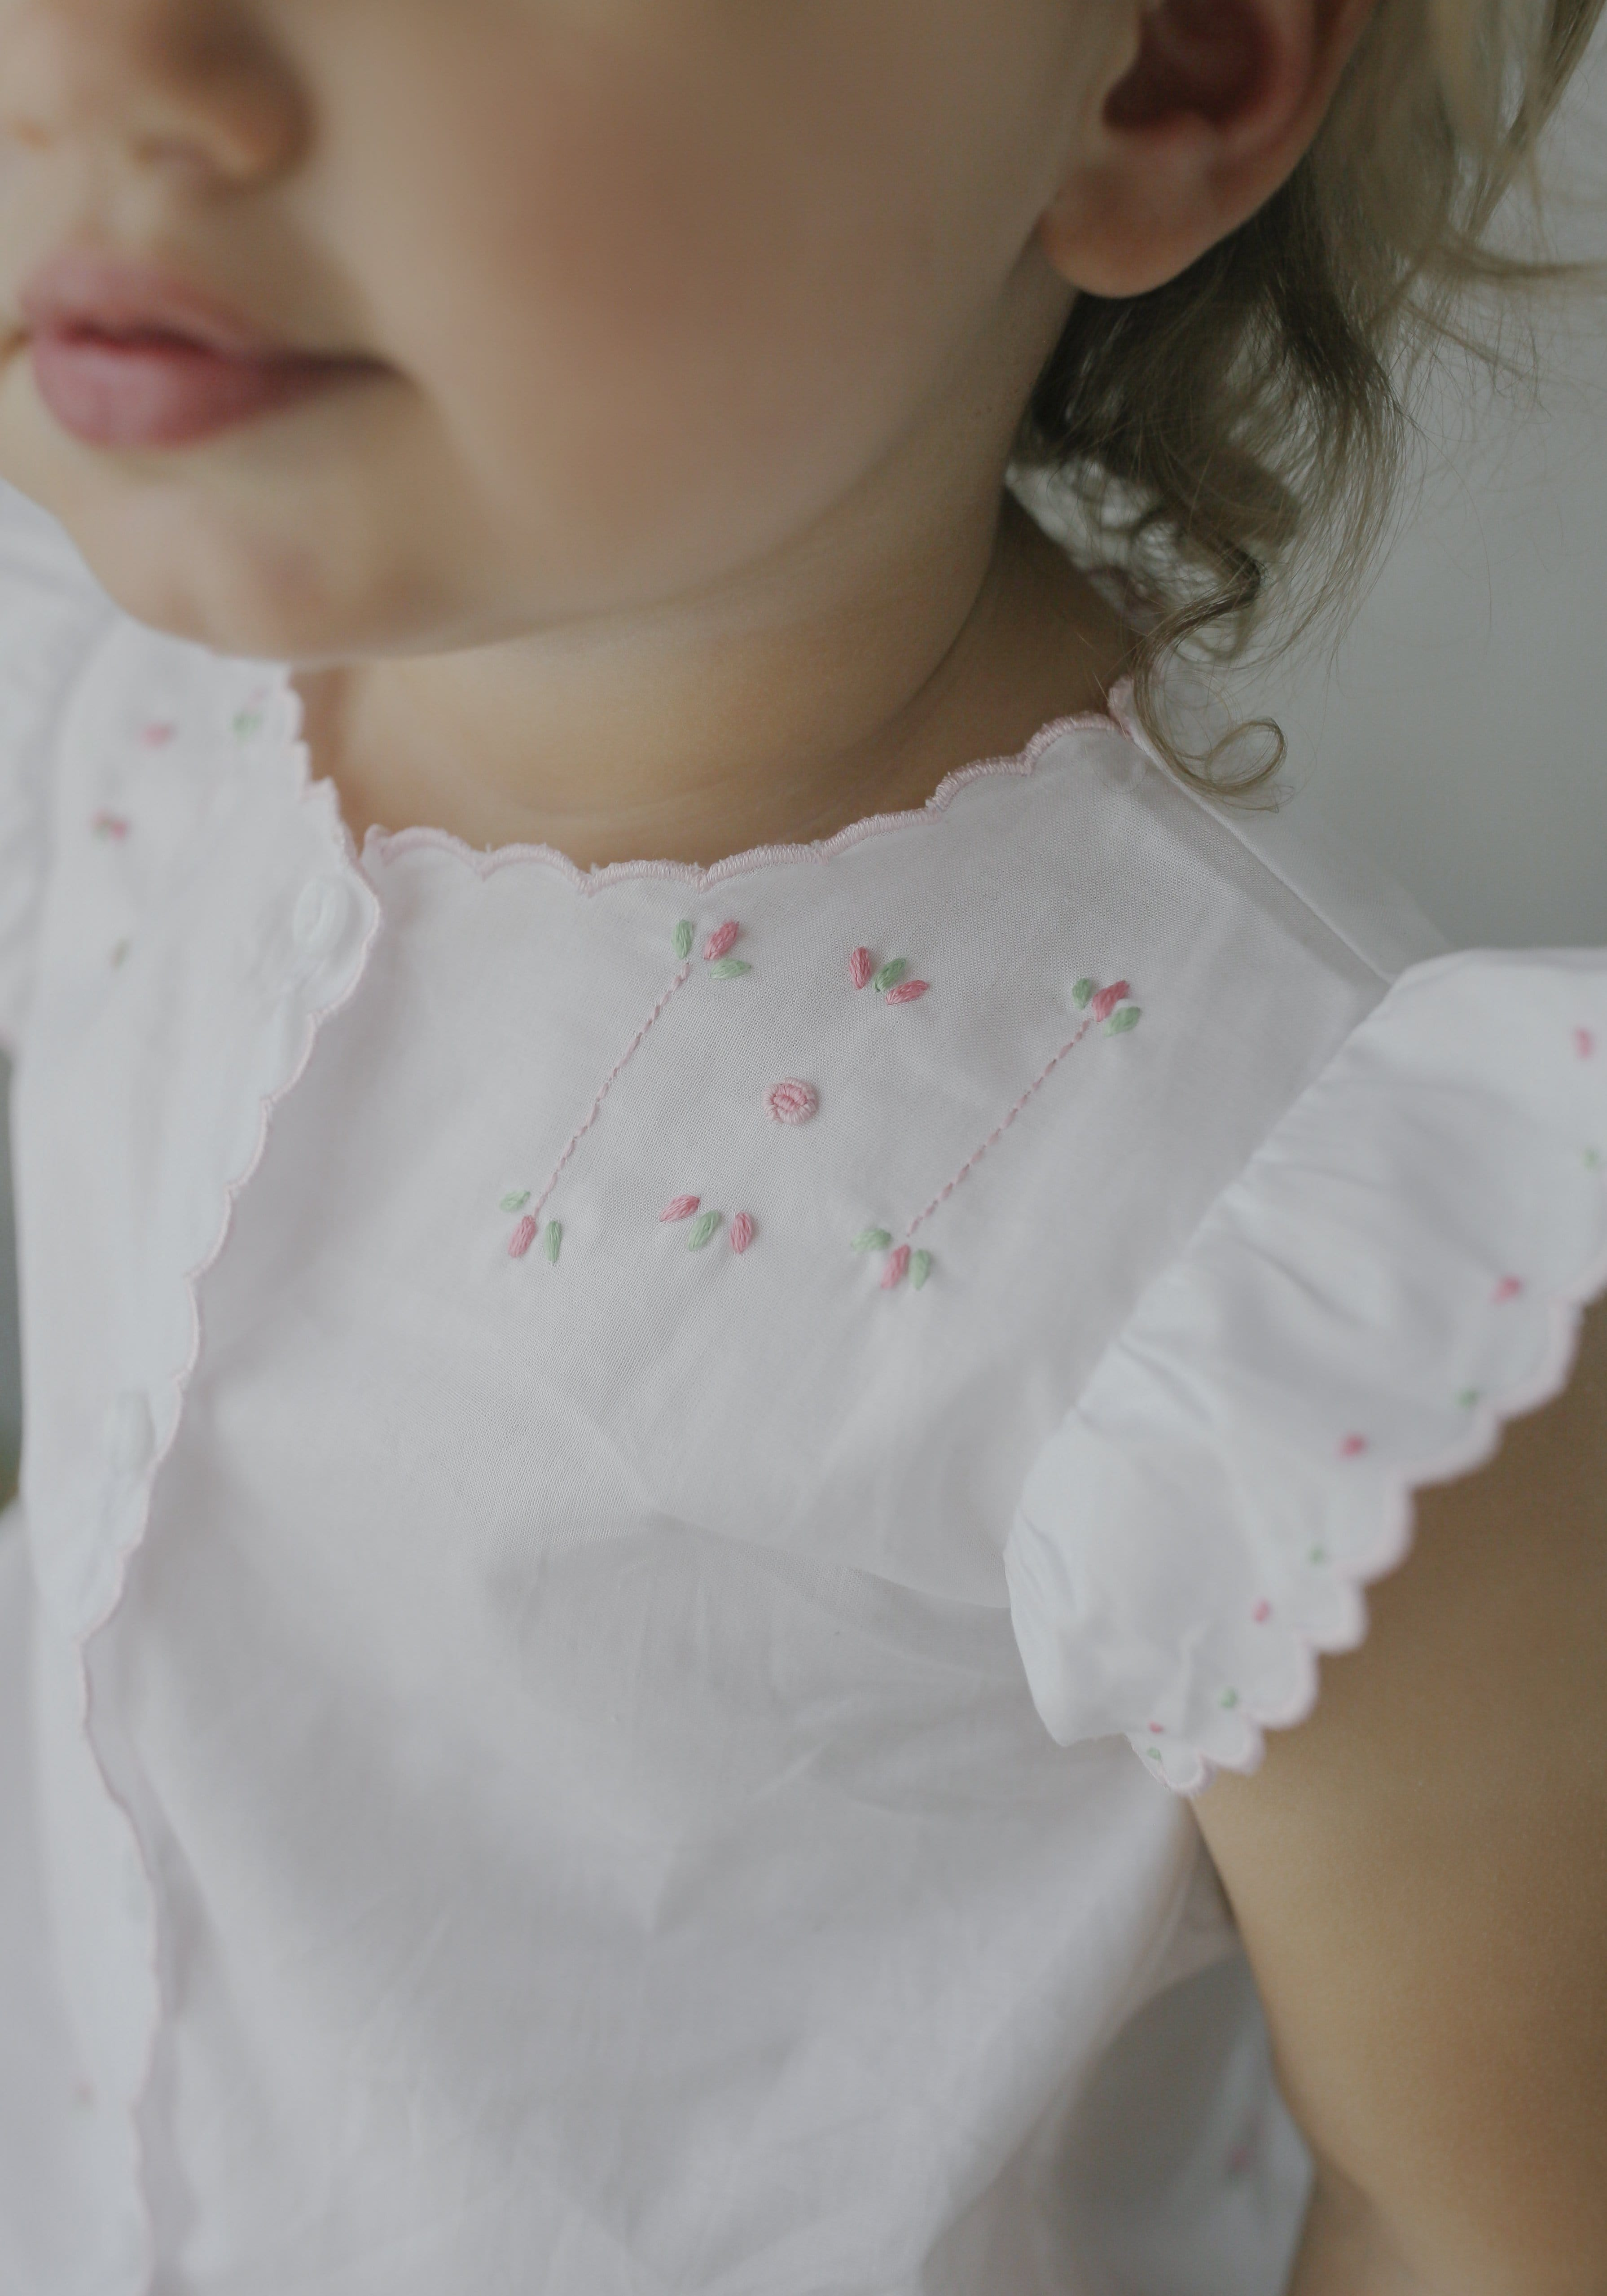 Tea Blouse-Pink, Little English, Little English, classic children's clothing, preppy children's clothing, little English clothing, classic baby clothing, traditional children's clothing, children's clothing, baby clothing